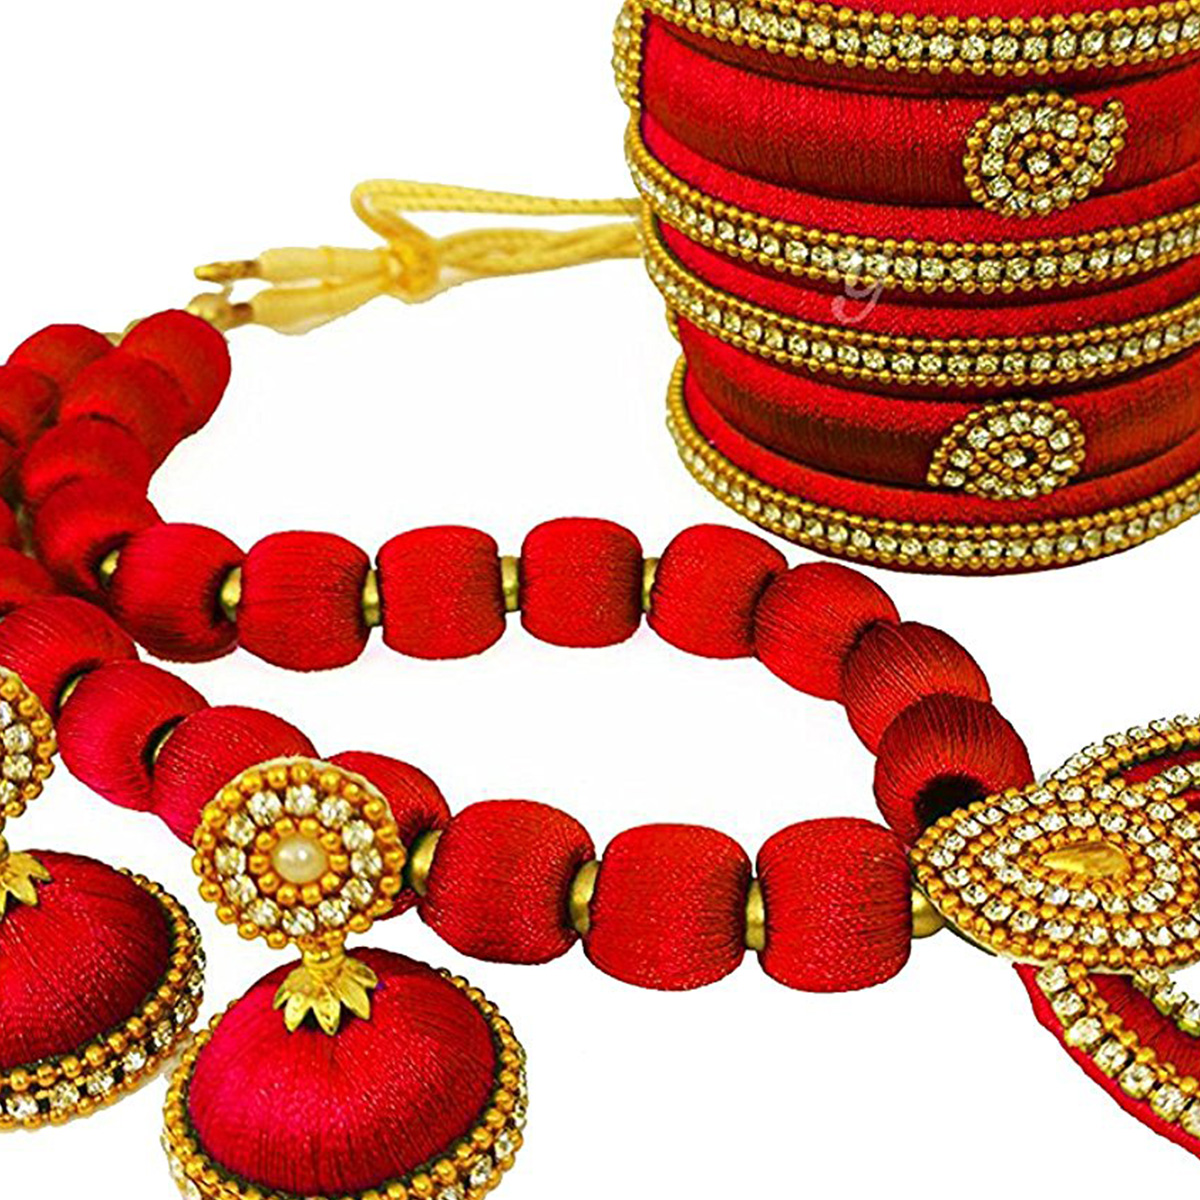 Refreshing Red Colored Stone Work Silk Thread Necklace Set